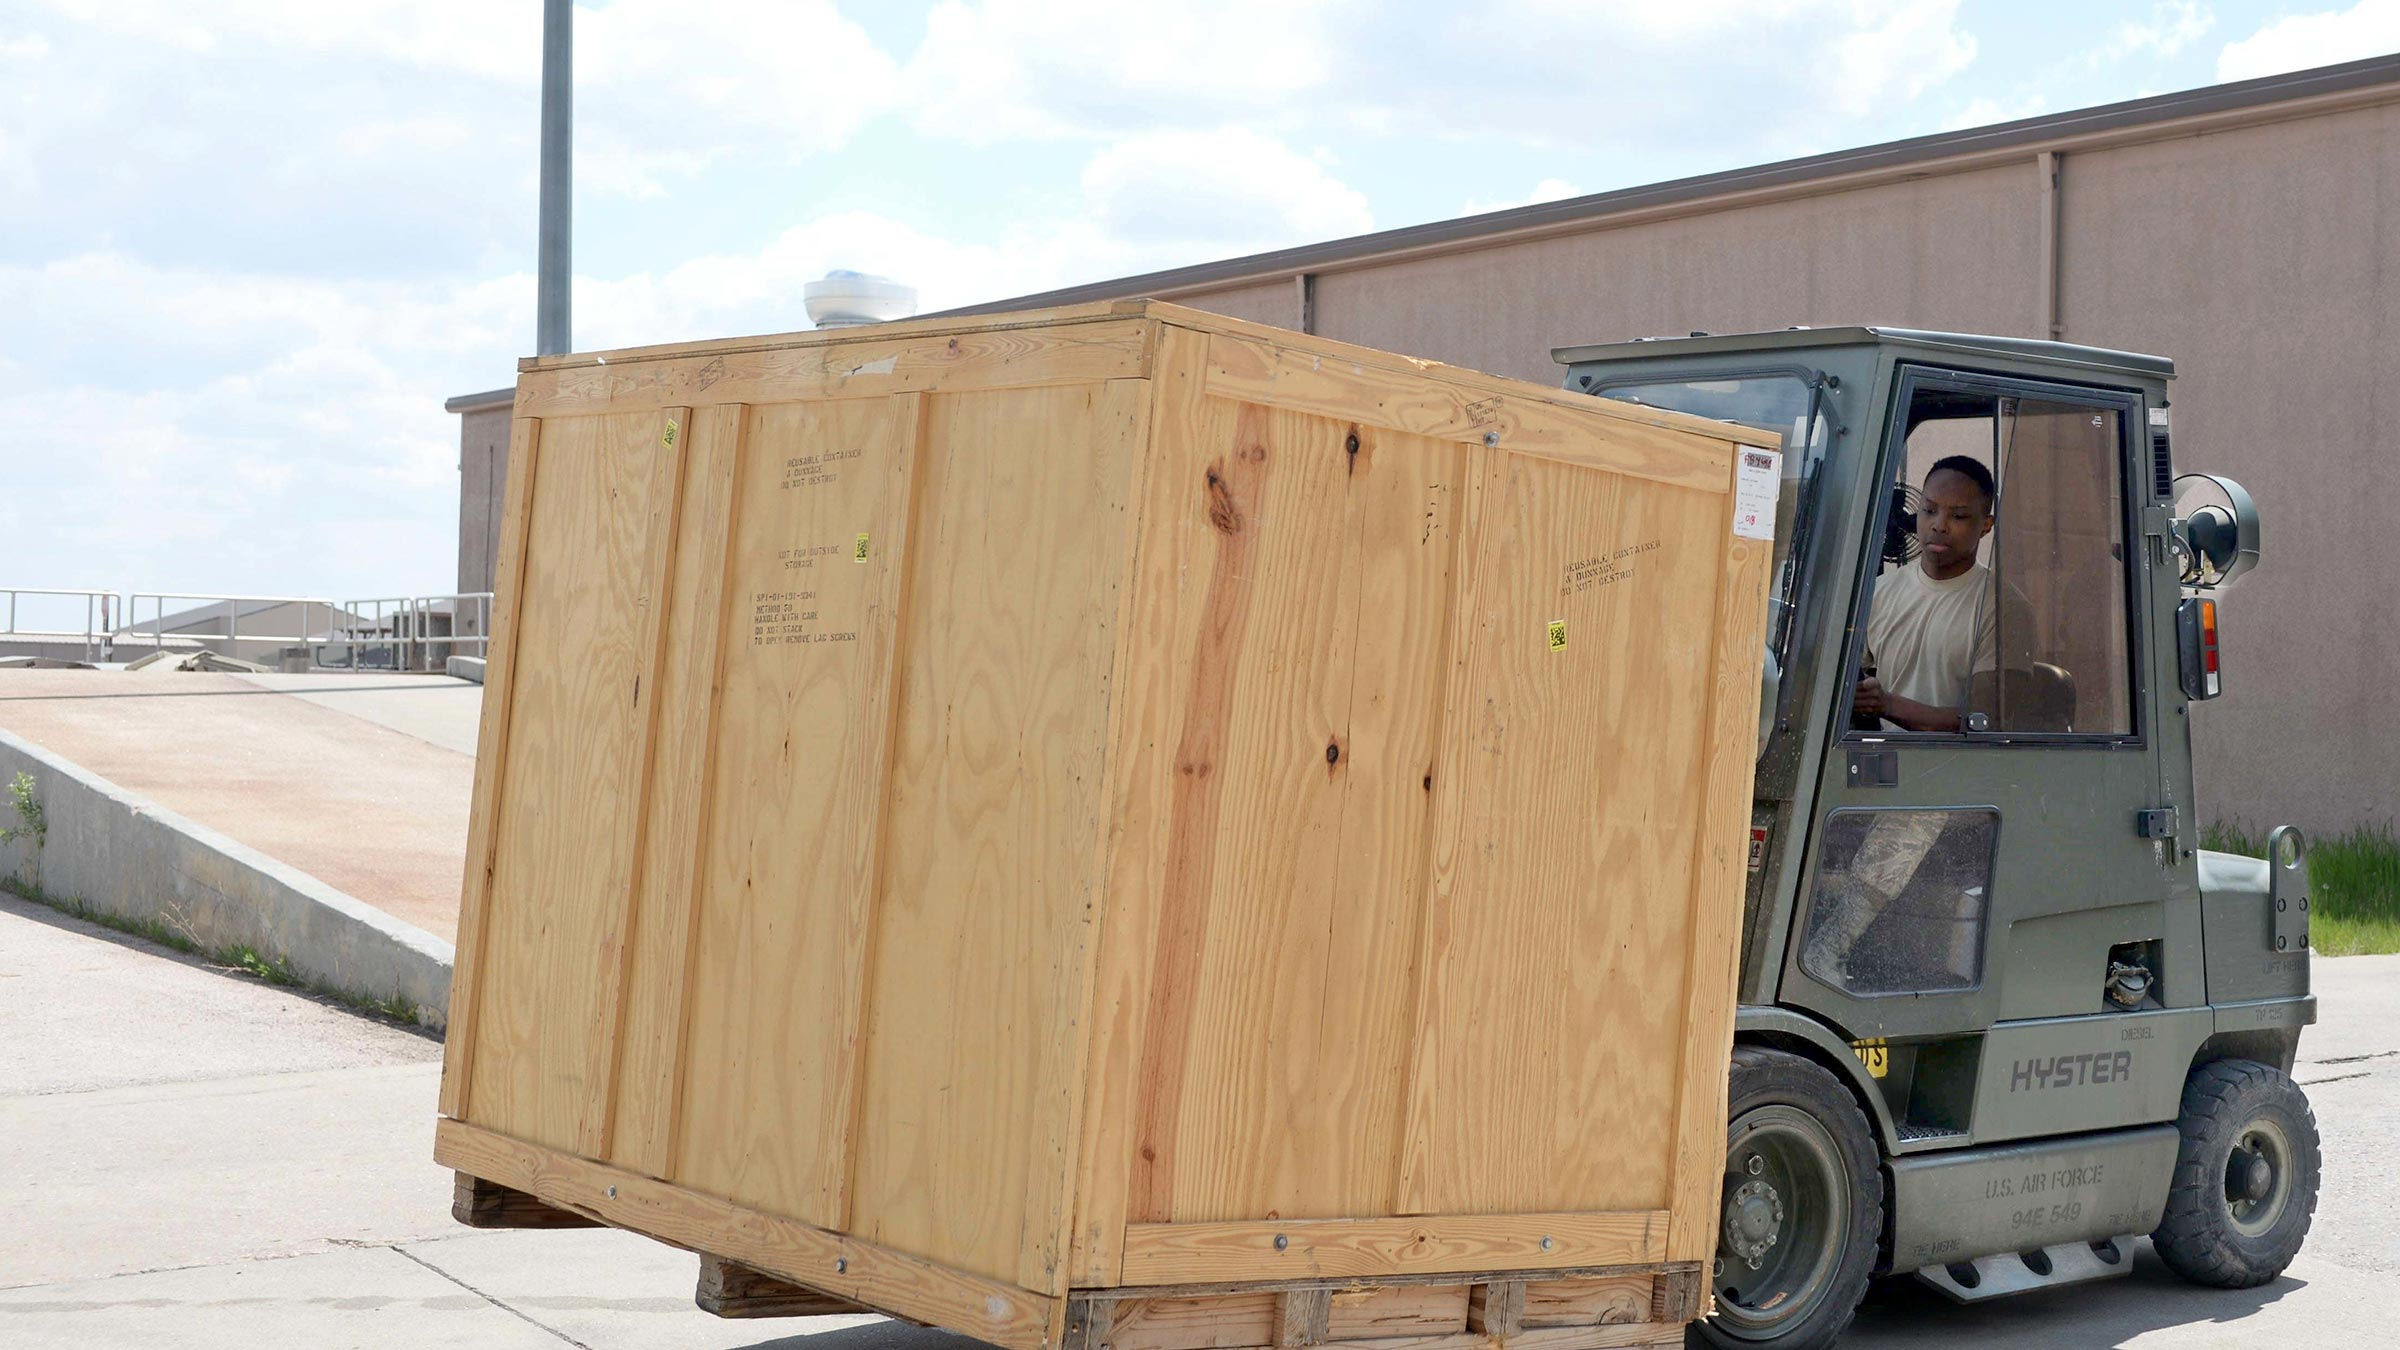 Fork lift carries wooden moving box